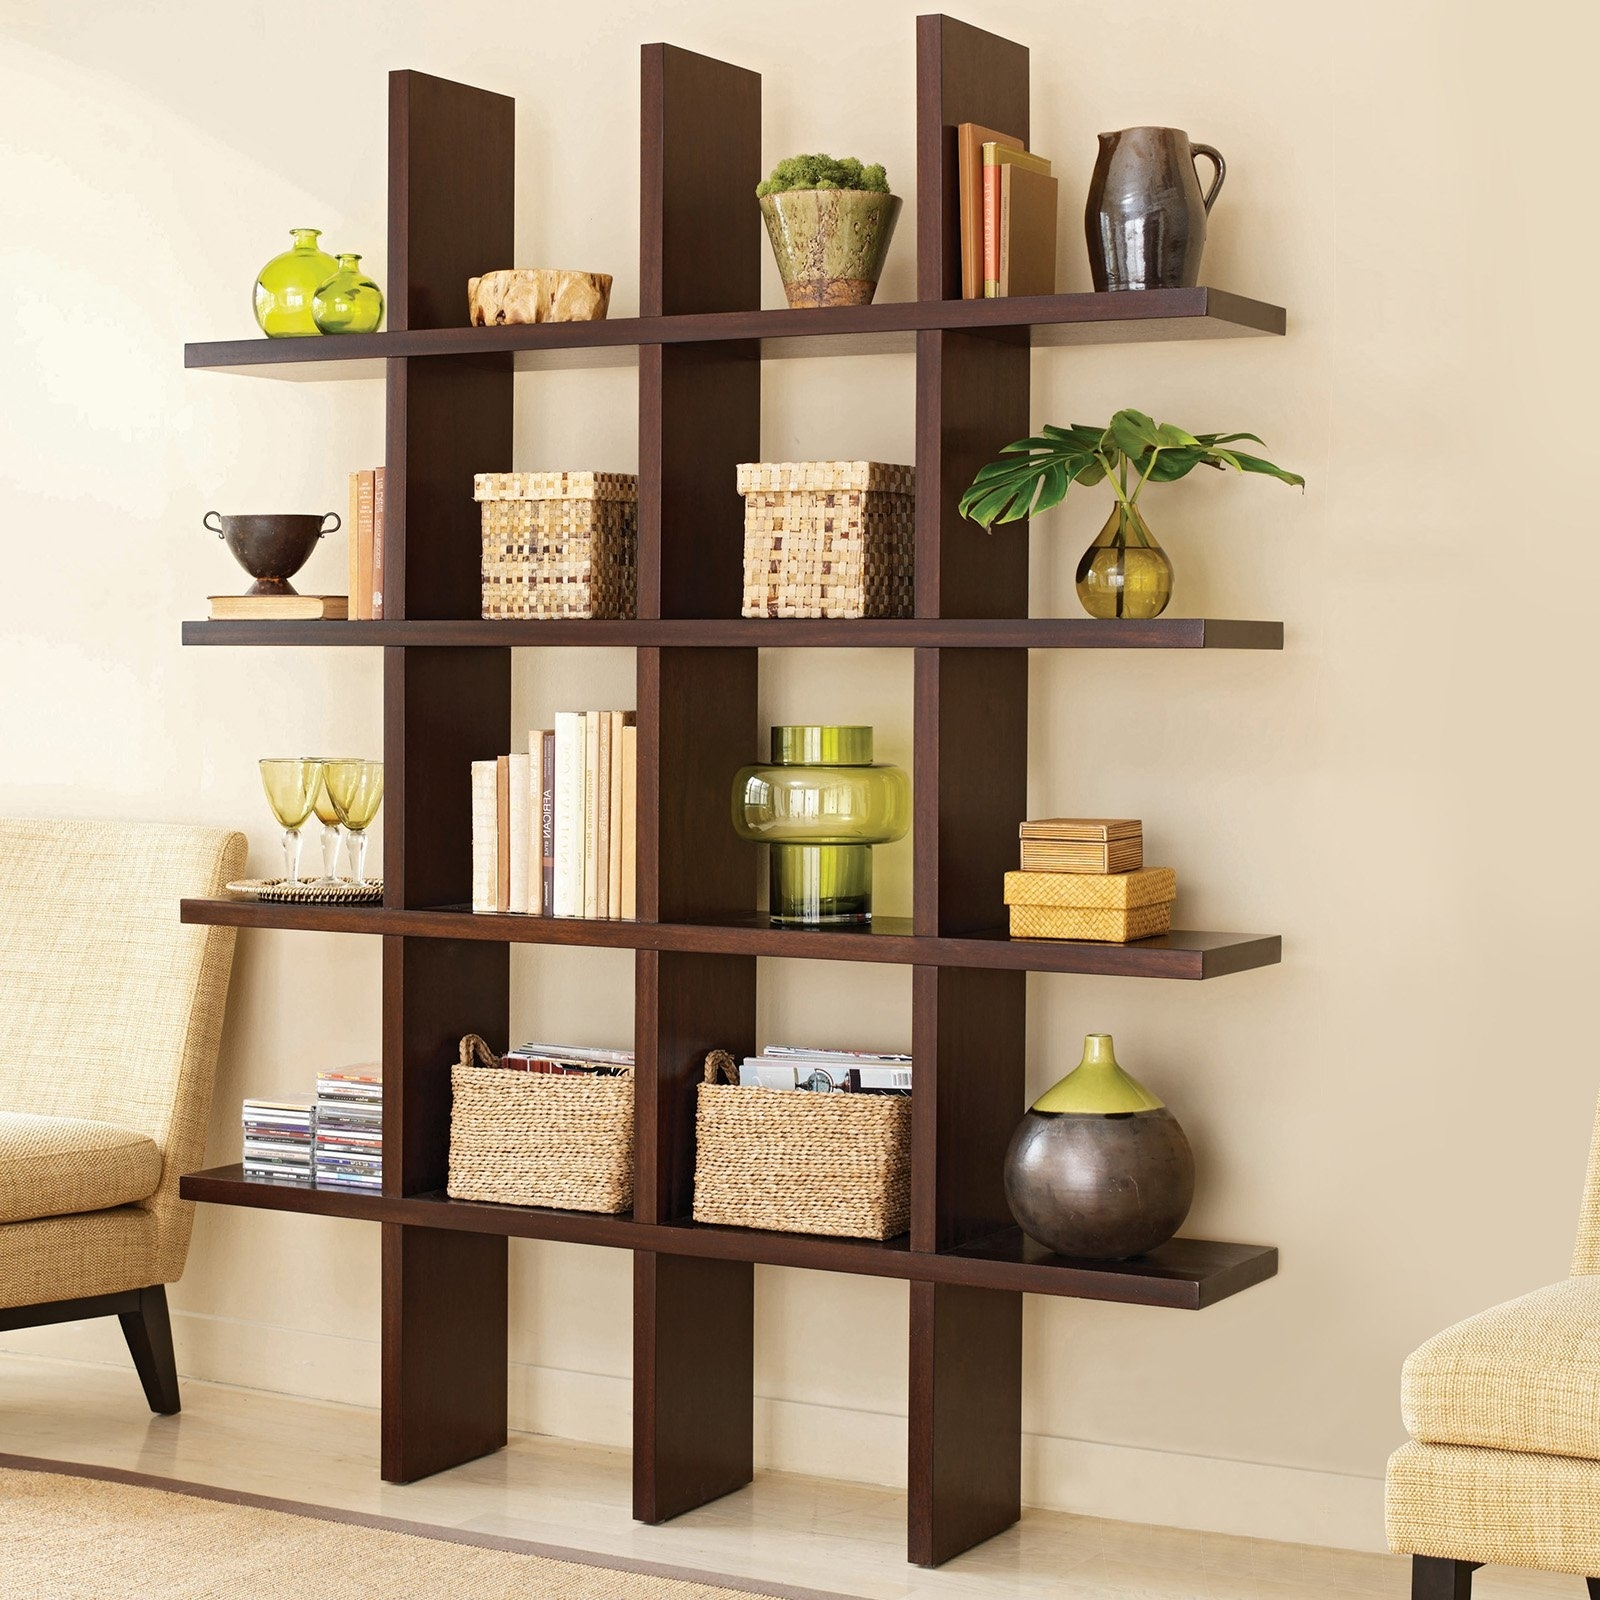 Chair Bookcases With Regard To Favorite Brown Stained Wooden Medium Narrow Bookshelf As Room Divider With (View 7 of 15)